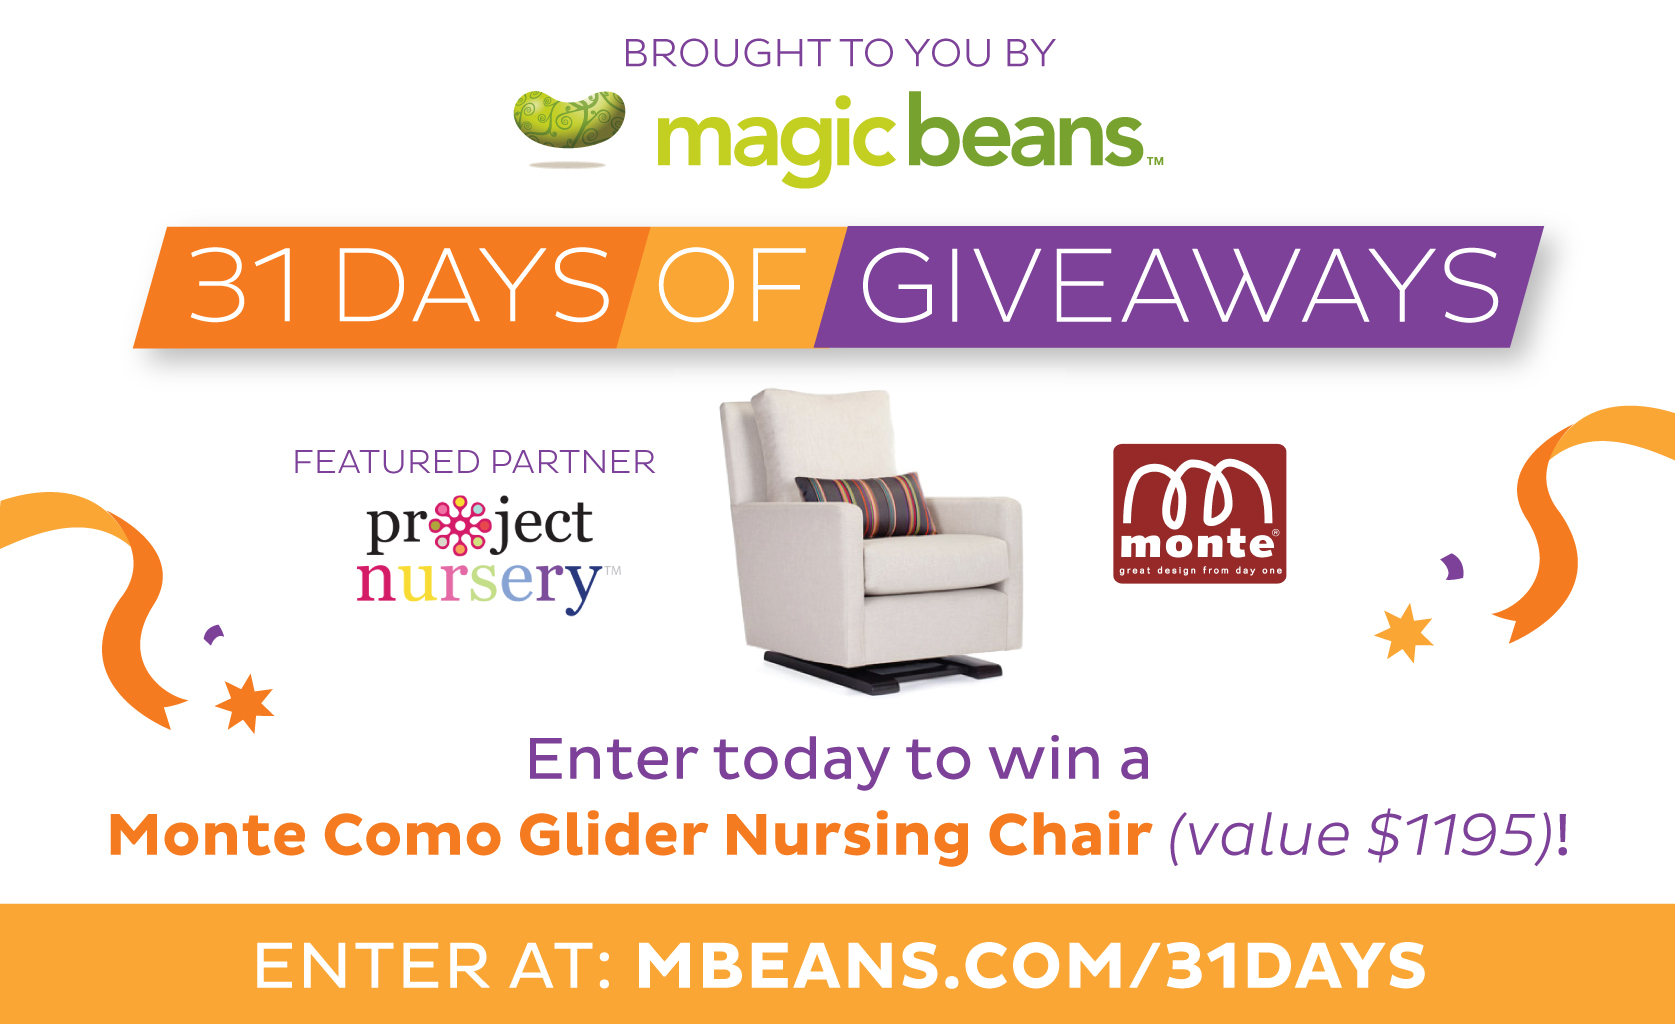 Monte Como Glider Nursing Chair 31 Days of Giveaways